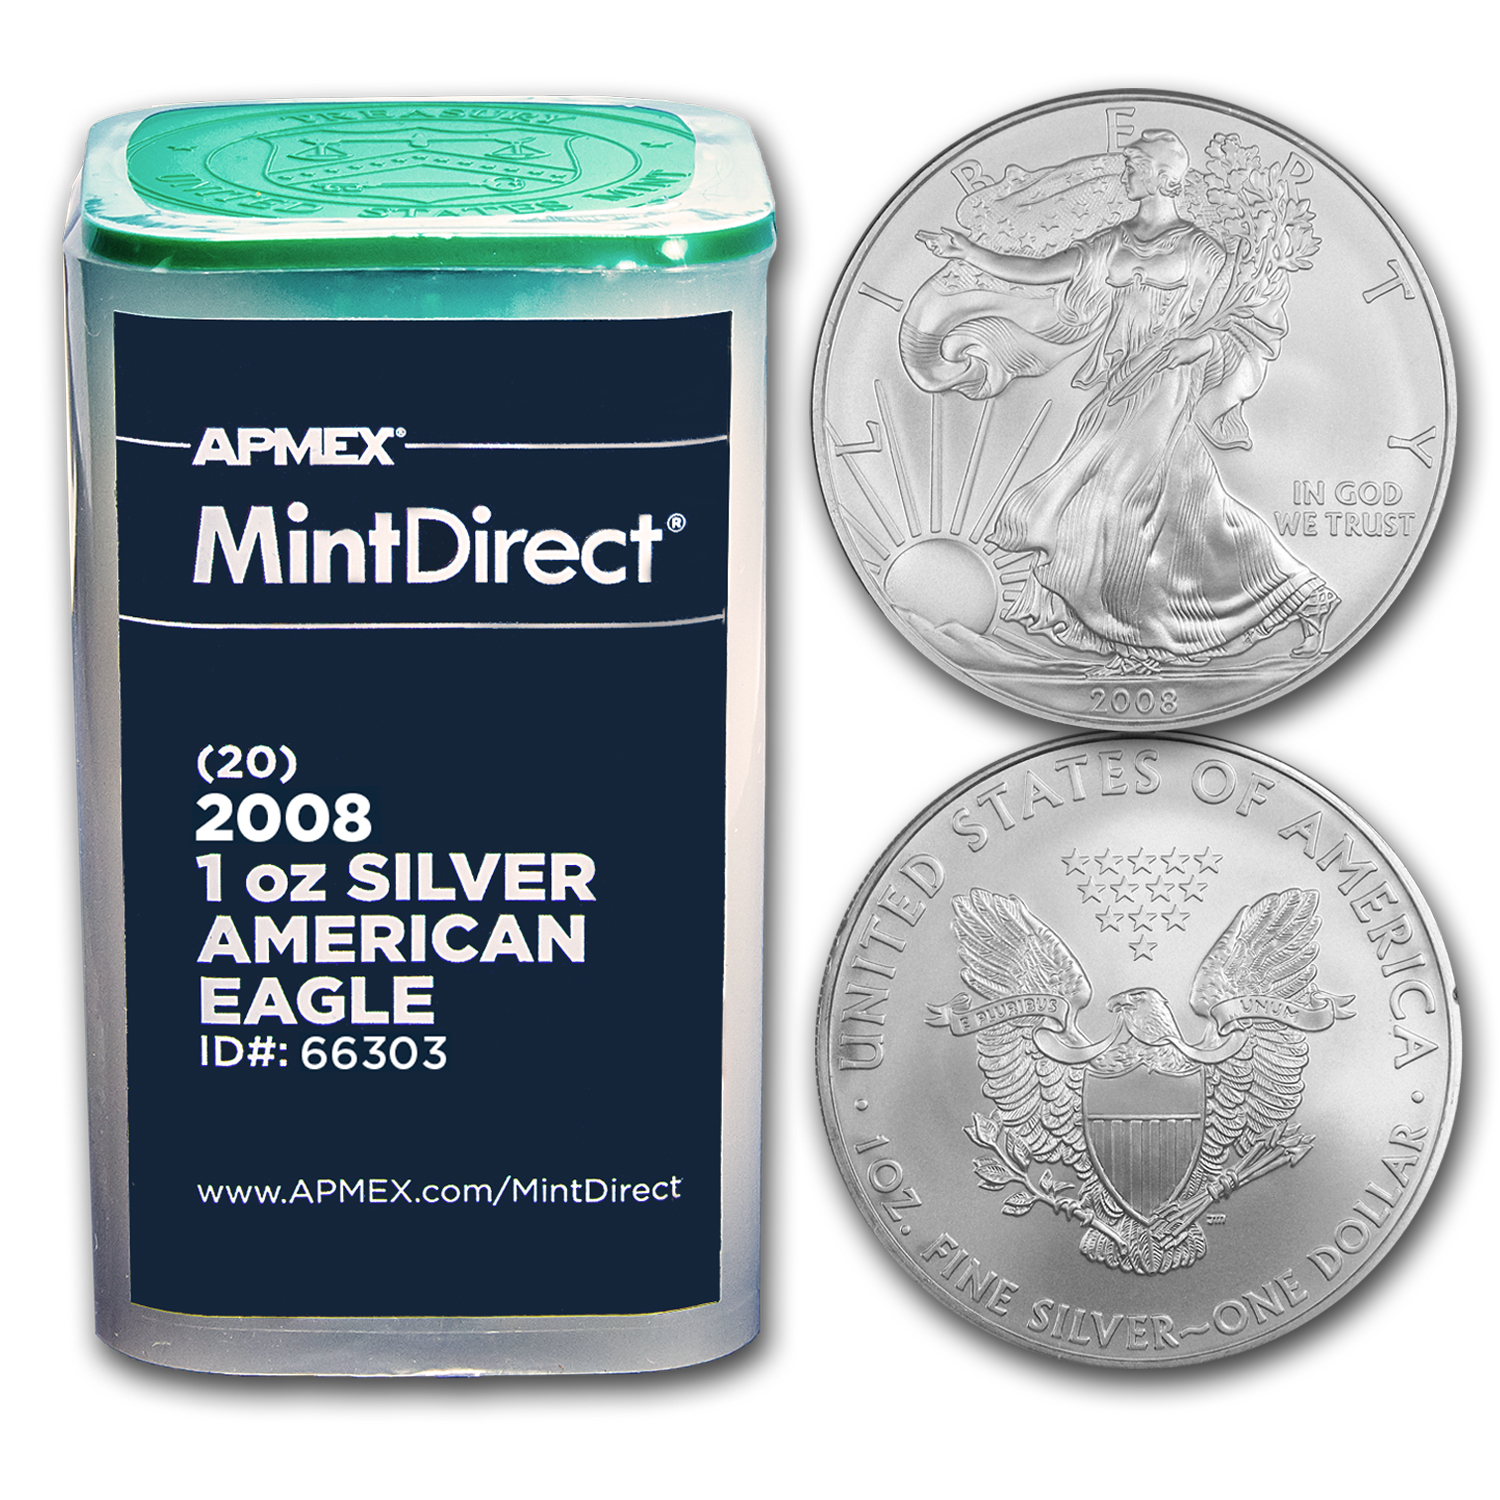 2008 1 oz Silver American Eagles (20-Coin MintDirect® Tube)